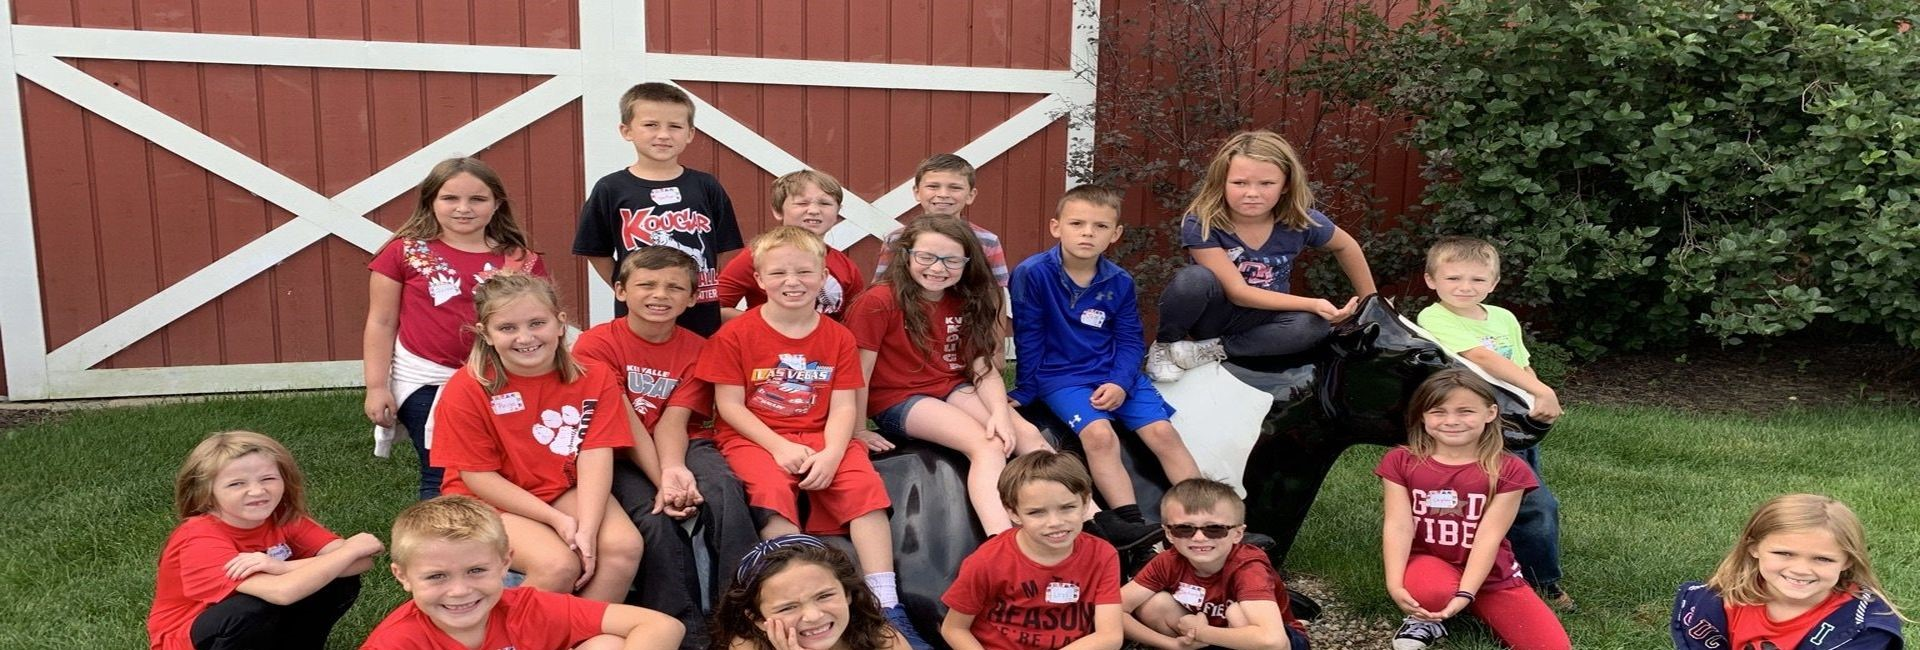 Field Trip Fun for Mrs. Wilder's Class